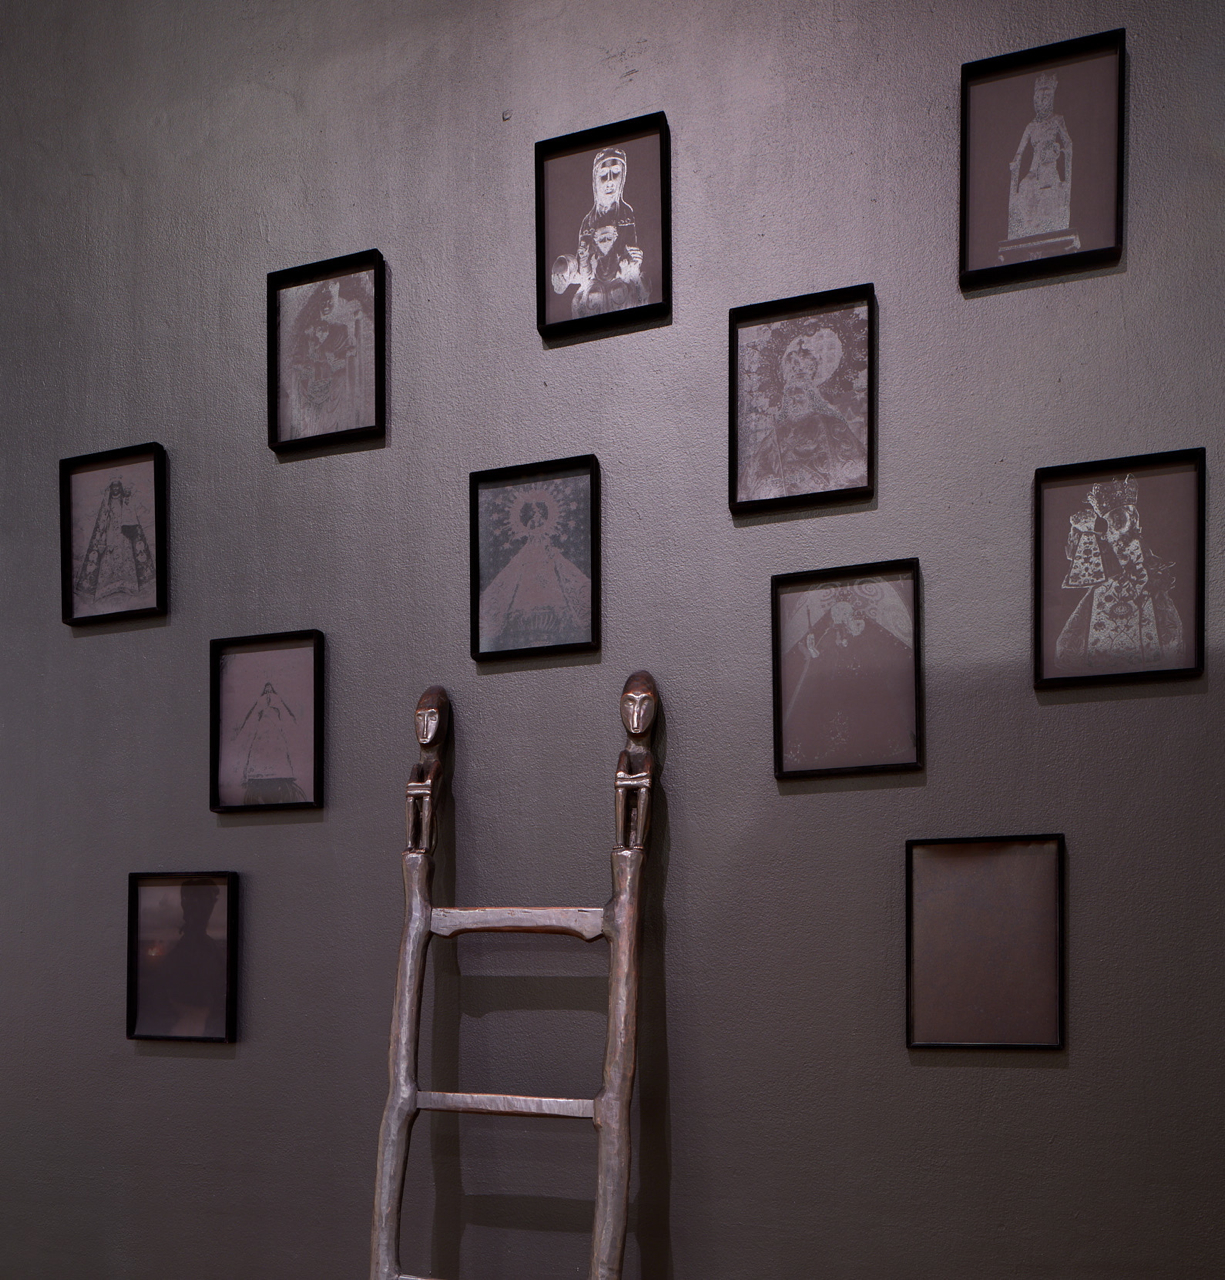 - Installation view: Black Madonnas and Ifugao bulul (rice god) ladderPhoto © Phil Bond